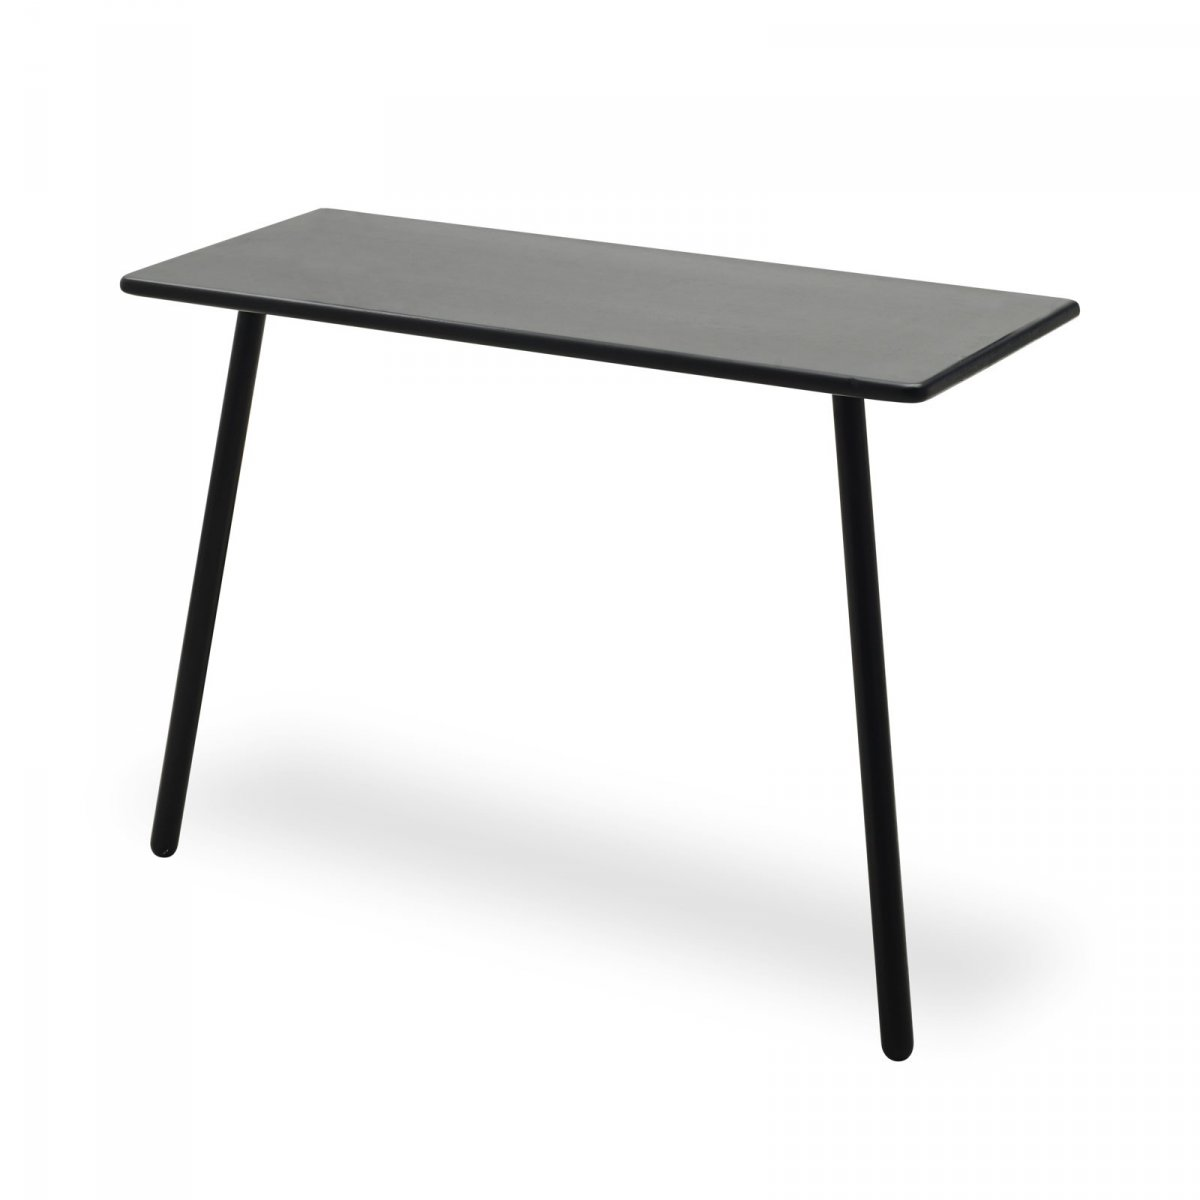 Georg Console Table, black.